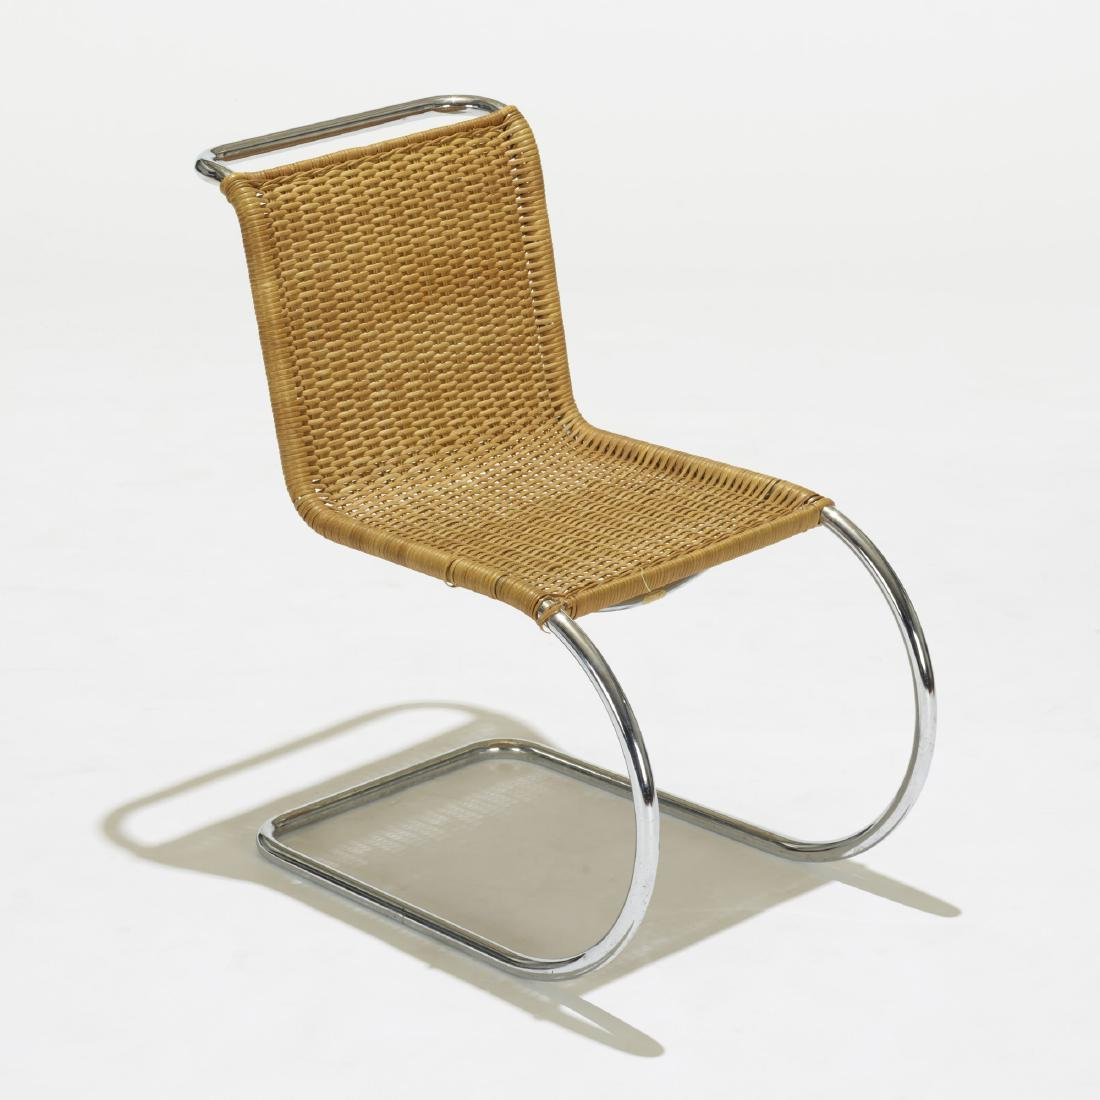 Ludwig Mies van der Rohe, MR20 and MR10 chairs - 4